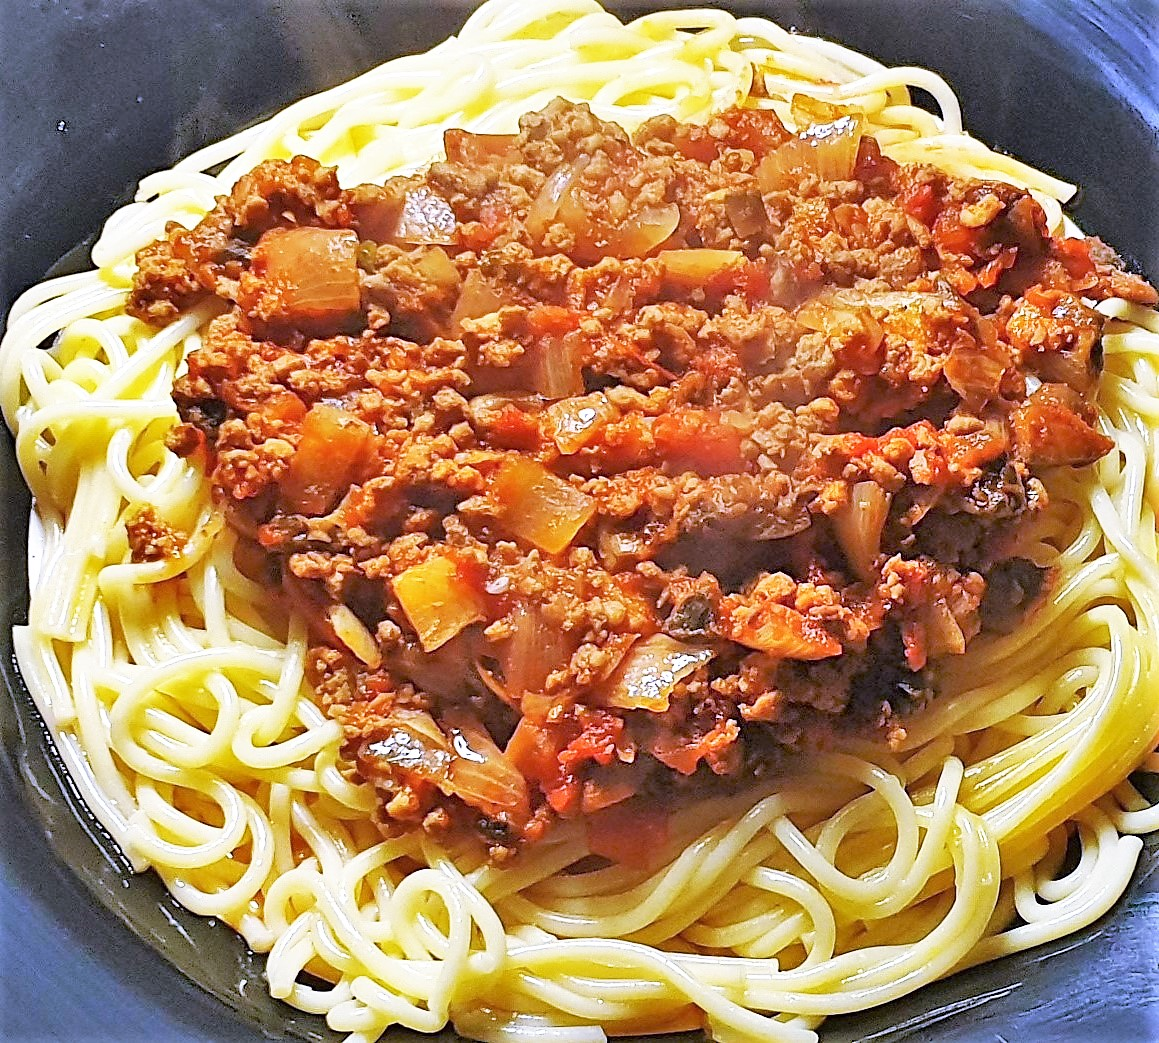 Homemade Chili Bolognese Sauce With Spaghetti Foodle Club Main Meals